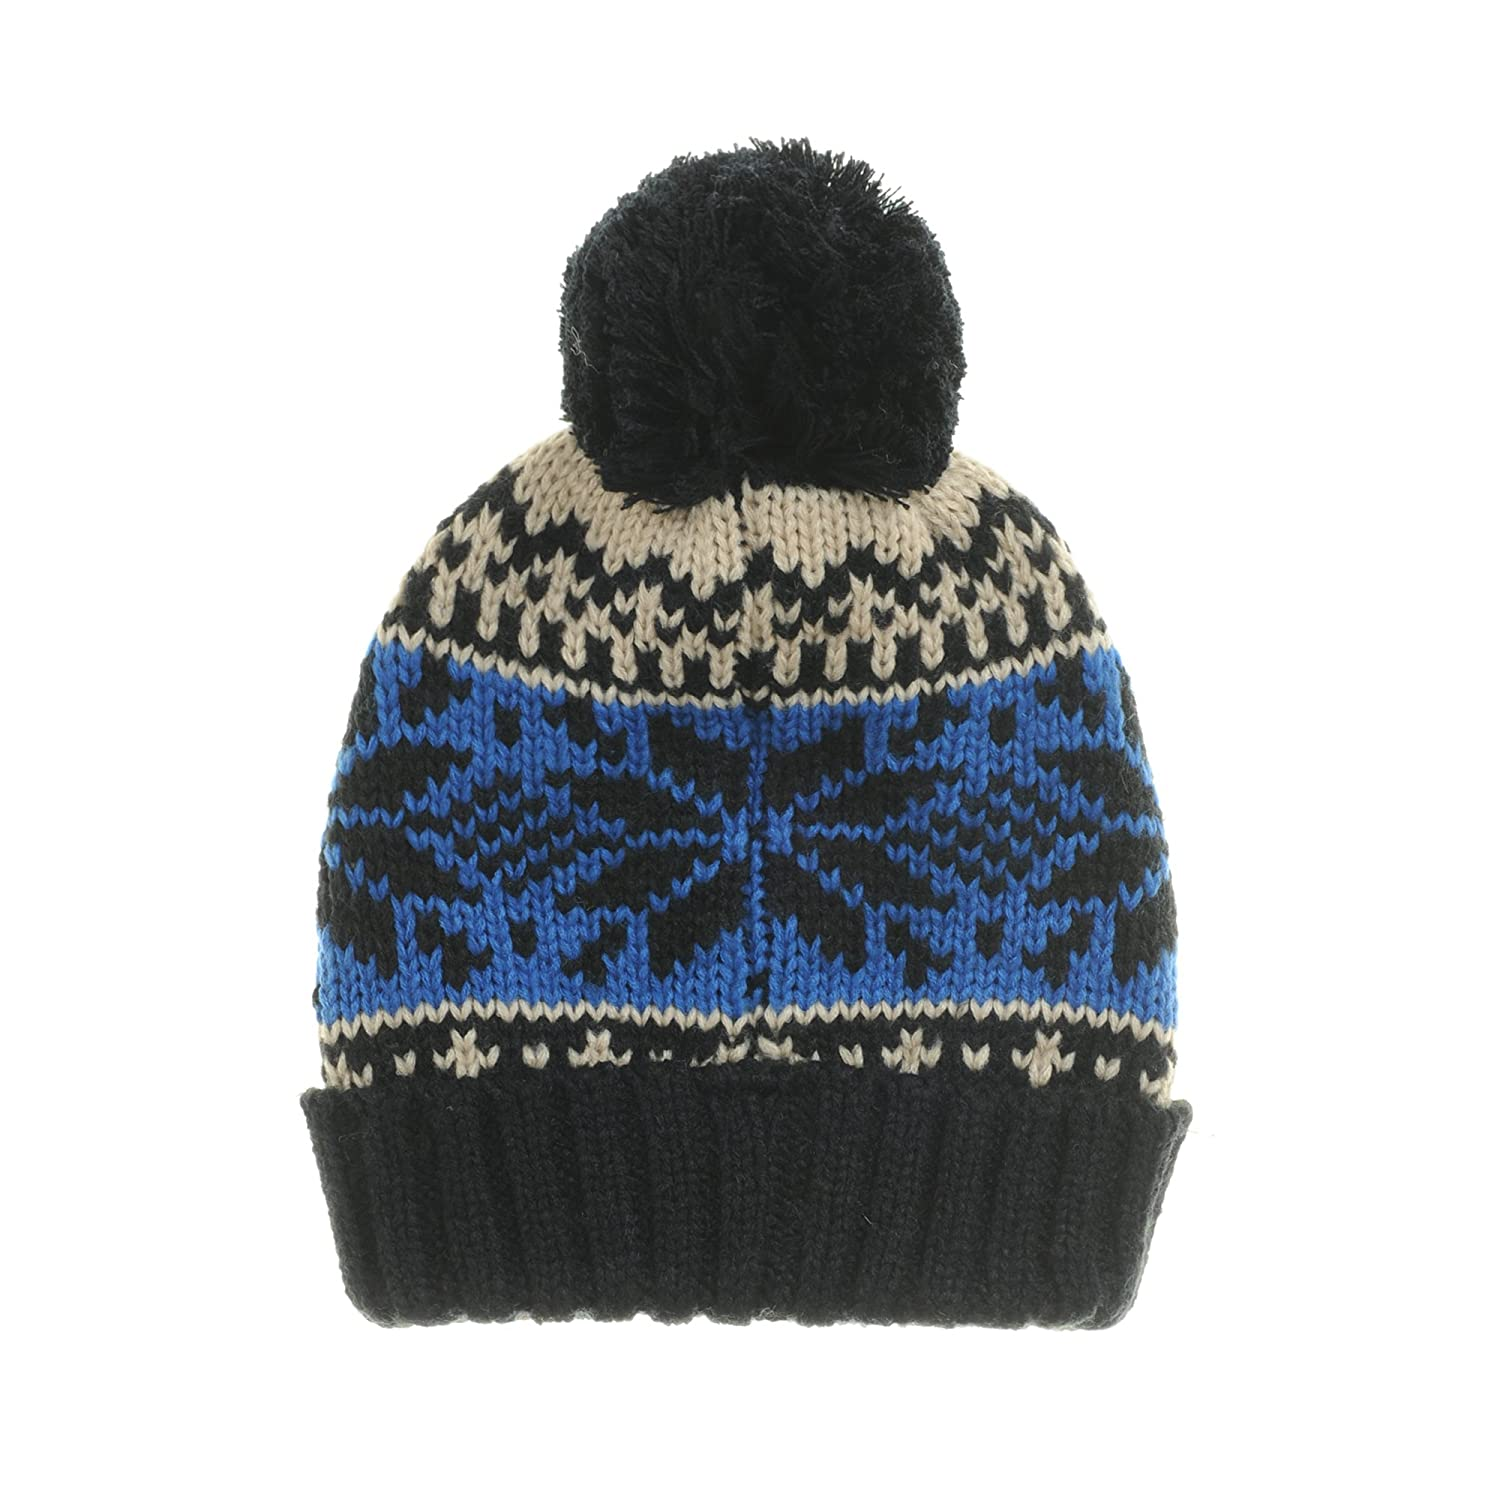 b362a15bd87 WITHMOONS Knitted Fairs Isle Nordic Bobble Pom Beanie Hat CR5169 (Black) at  Amazon Women s Clothing store